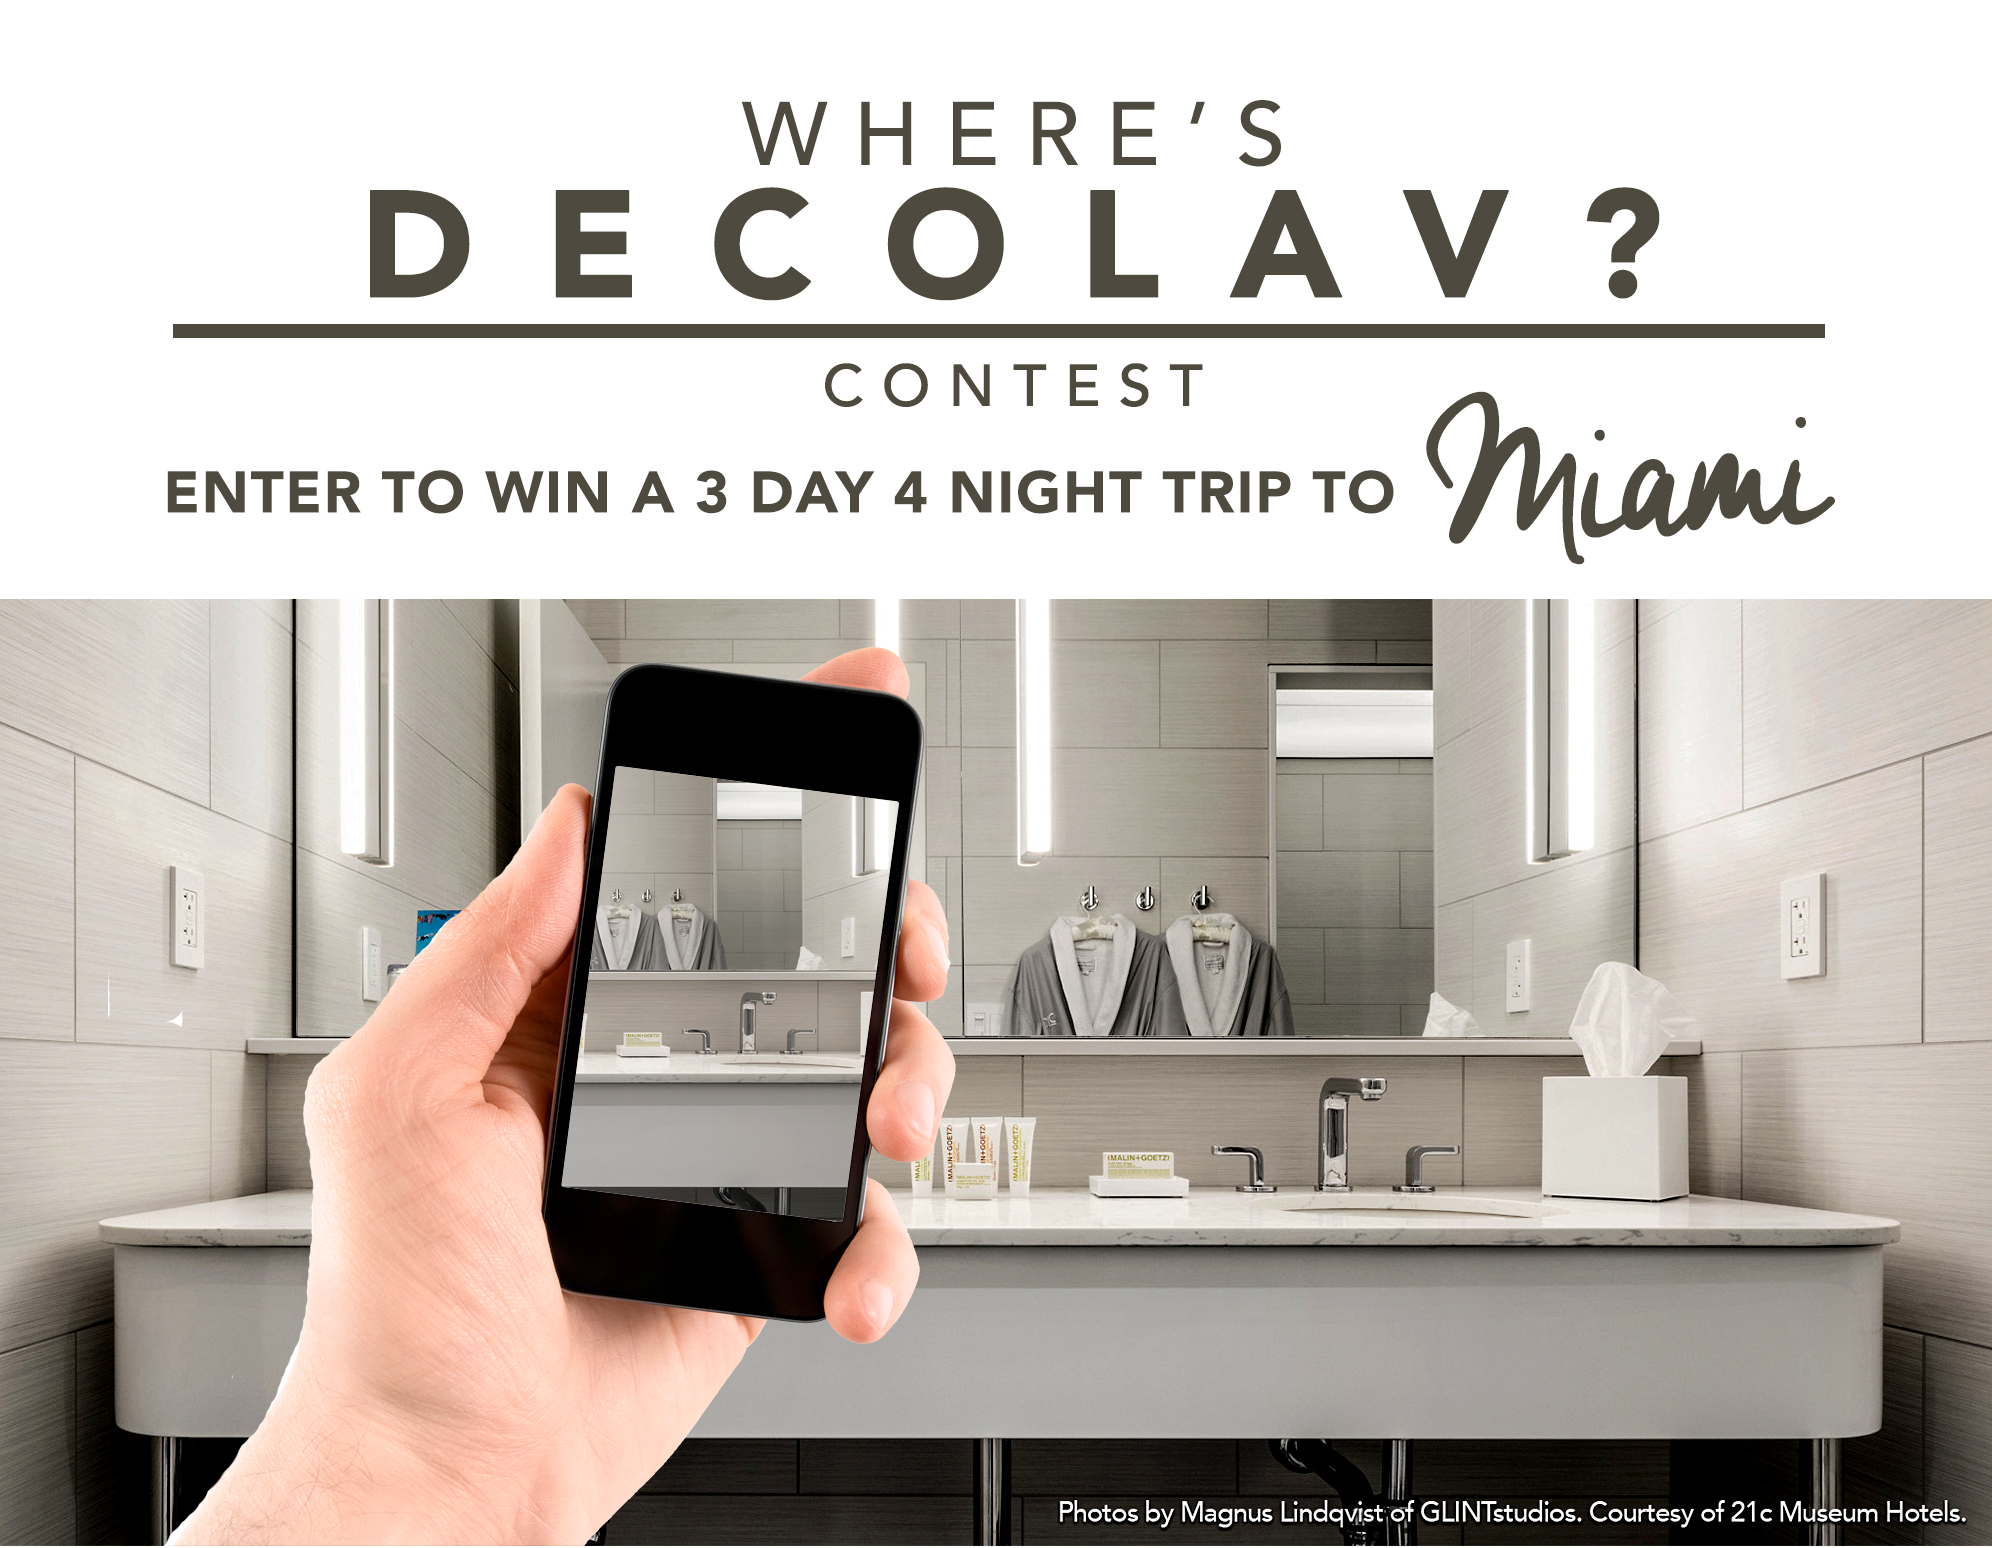 Where's DECOLAV? Contest - ENTER TO WIN A MIAMI VACATION!